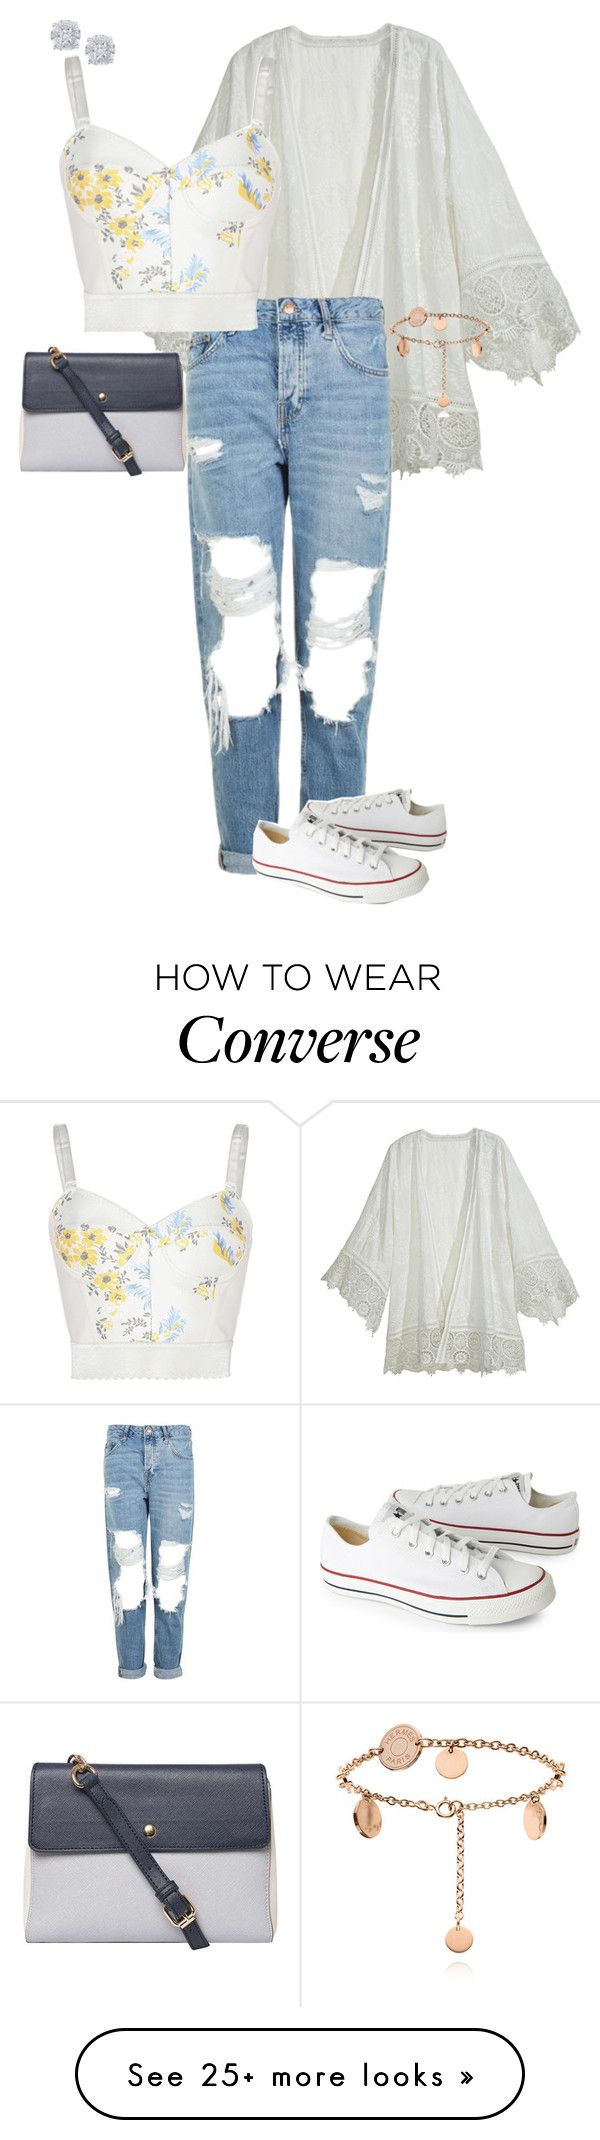 """""""Sans titre #308"""" by adeline-m on Polyvore featuring Calypso St. Barth, Topshop, Converse, STELLA McCARTNEY, Dorothy Perkins and Effy Jewelry"""